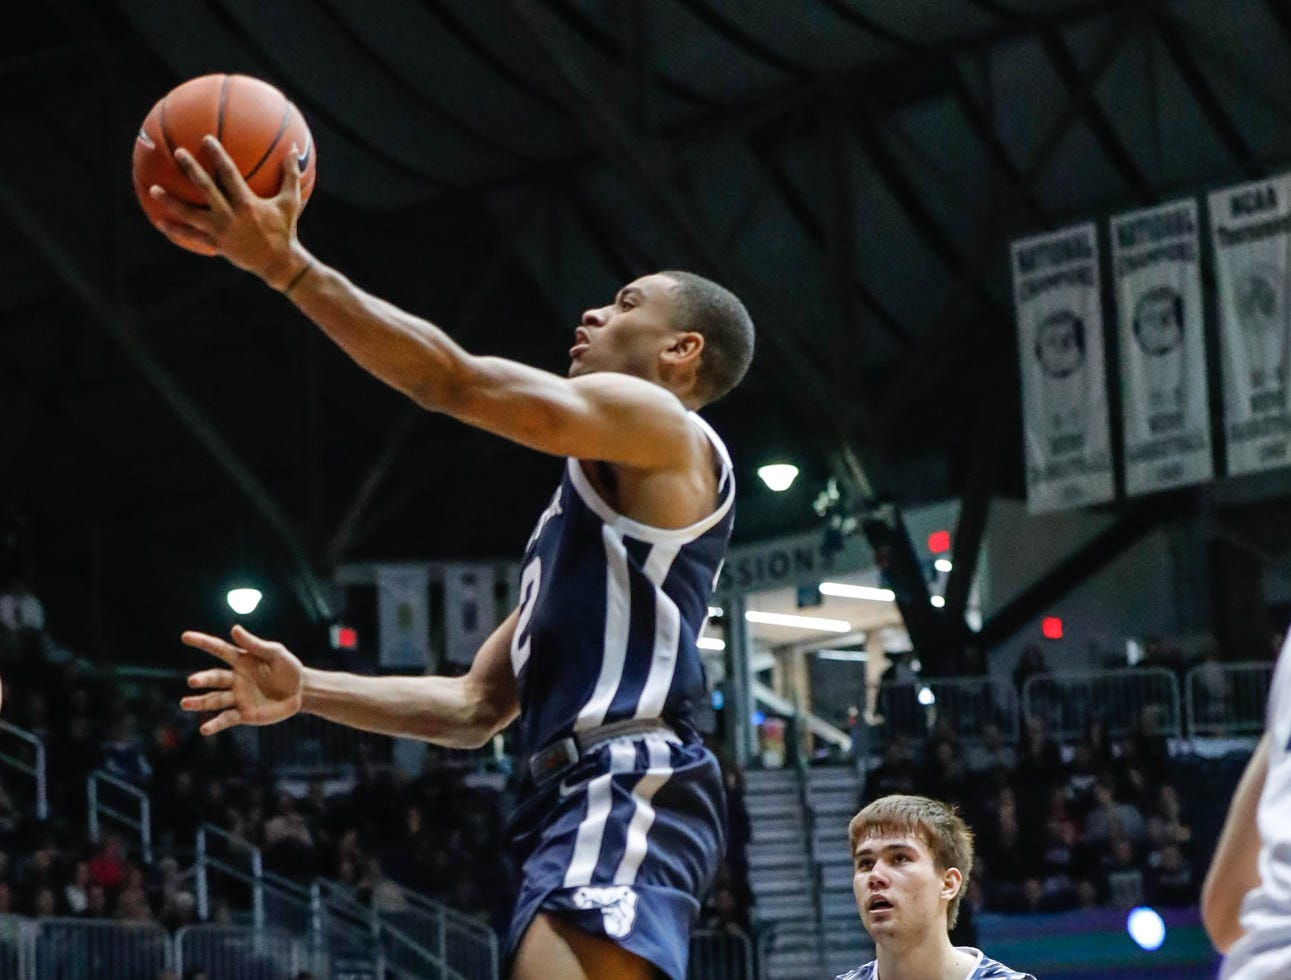 Butler University's guard Aaron Thompson (2), shoots a layup past UC Irvine's guard Max Hazzard (2), during a game between Butler University and UC Irvine, at Hinkle Fieldhouse on Friday, Dec. 21, 2018.